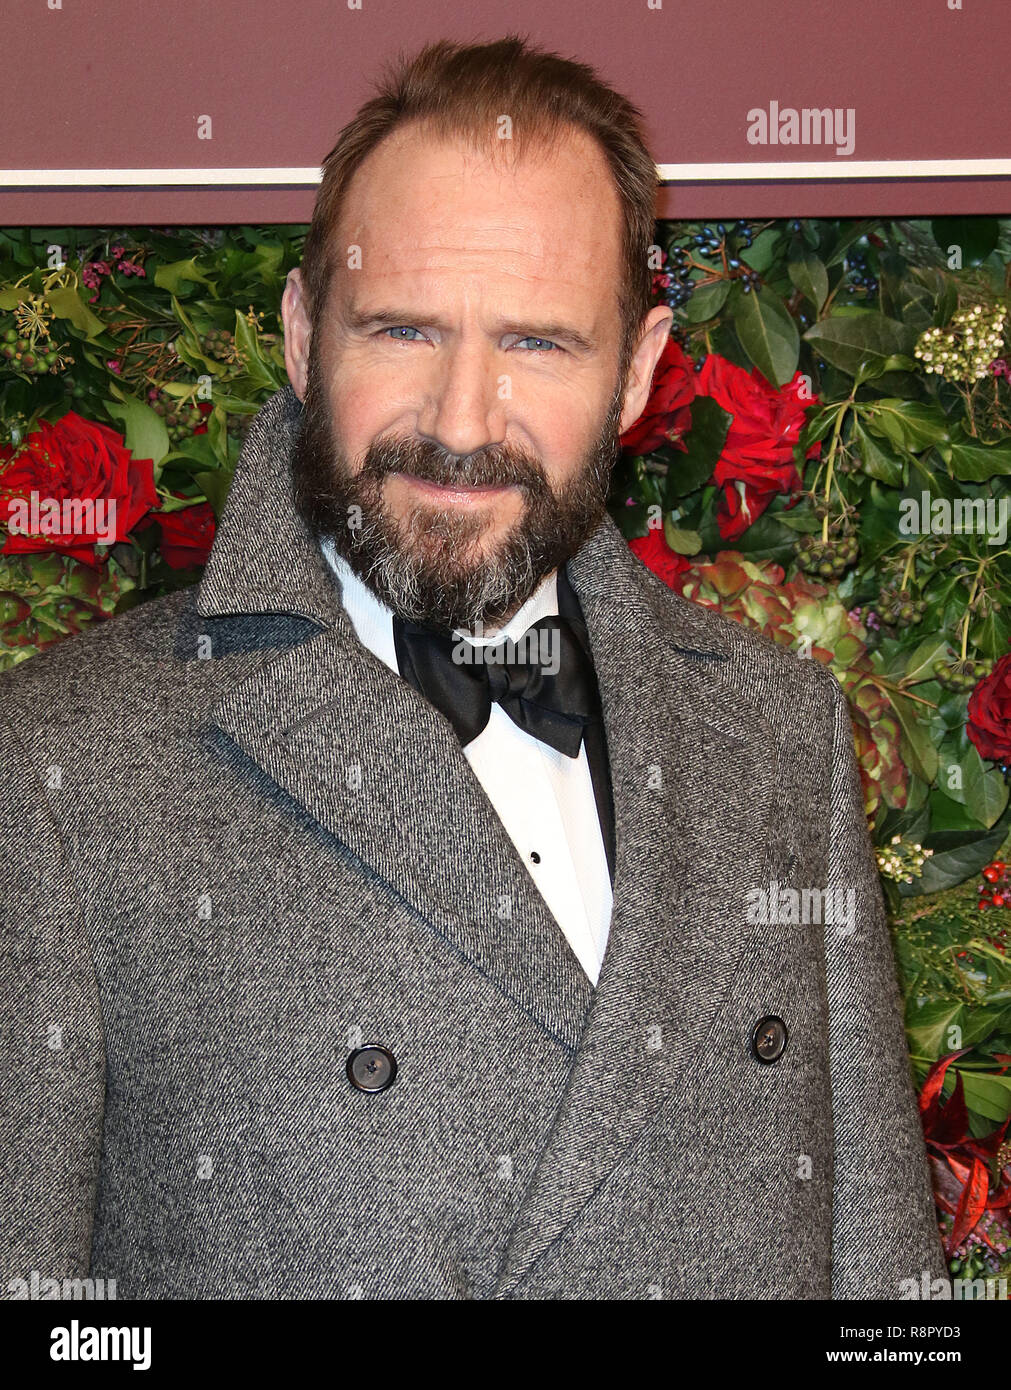 Nov 18, 2018  - Ralph Fiennes attending 64th Evening Standard Theatre Awards, Theatre Royal Drury Lane in London, UK - Stock Image